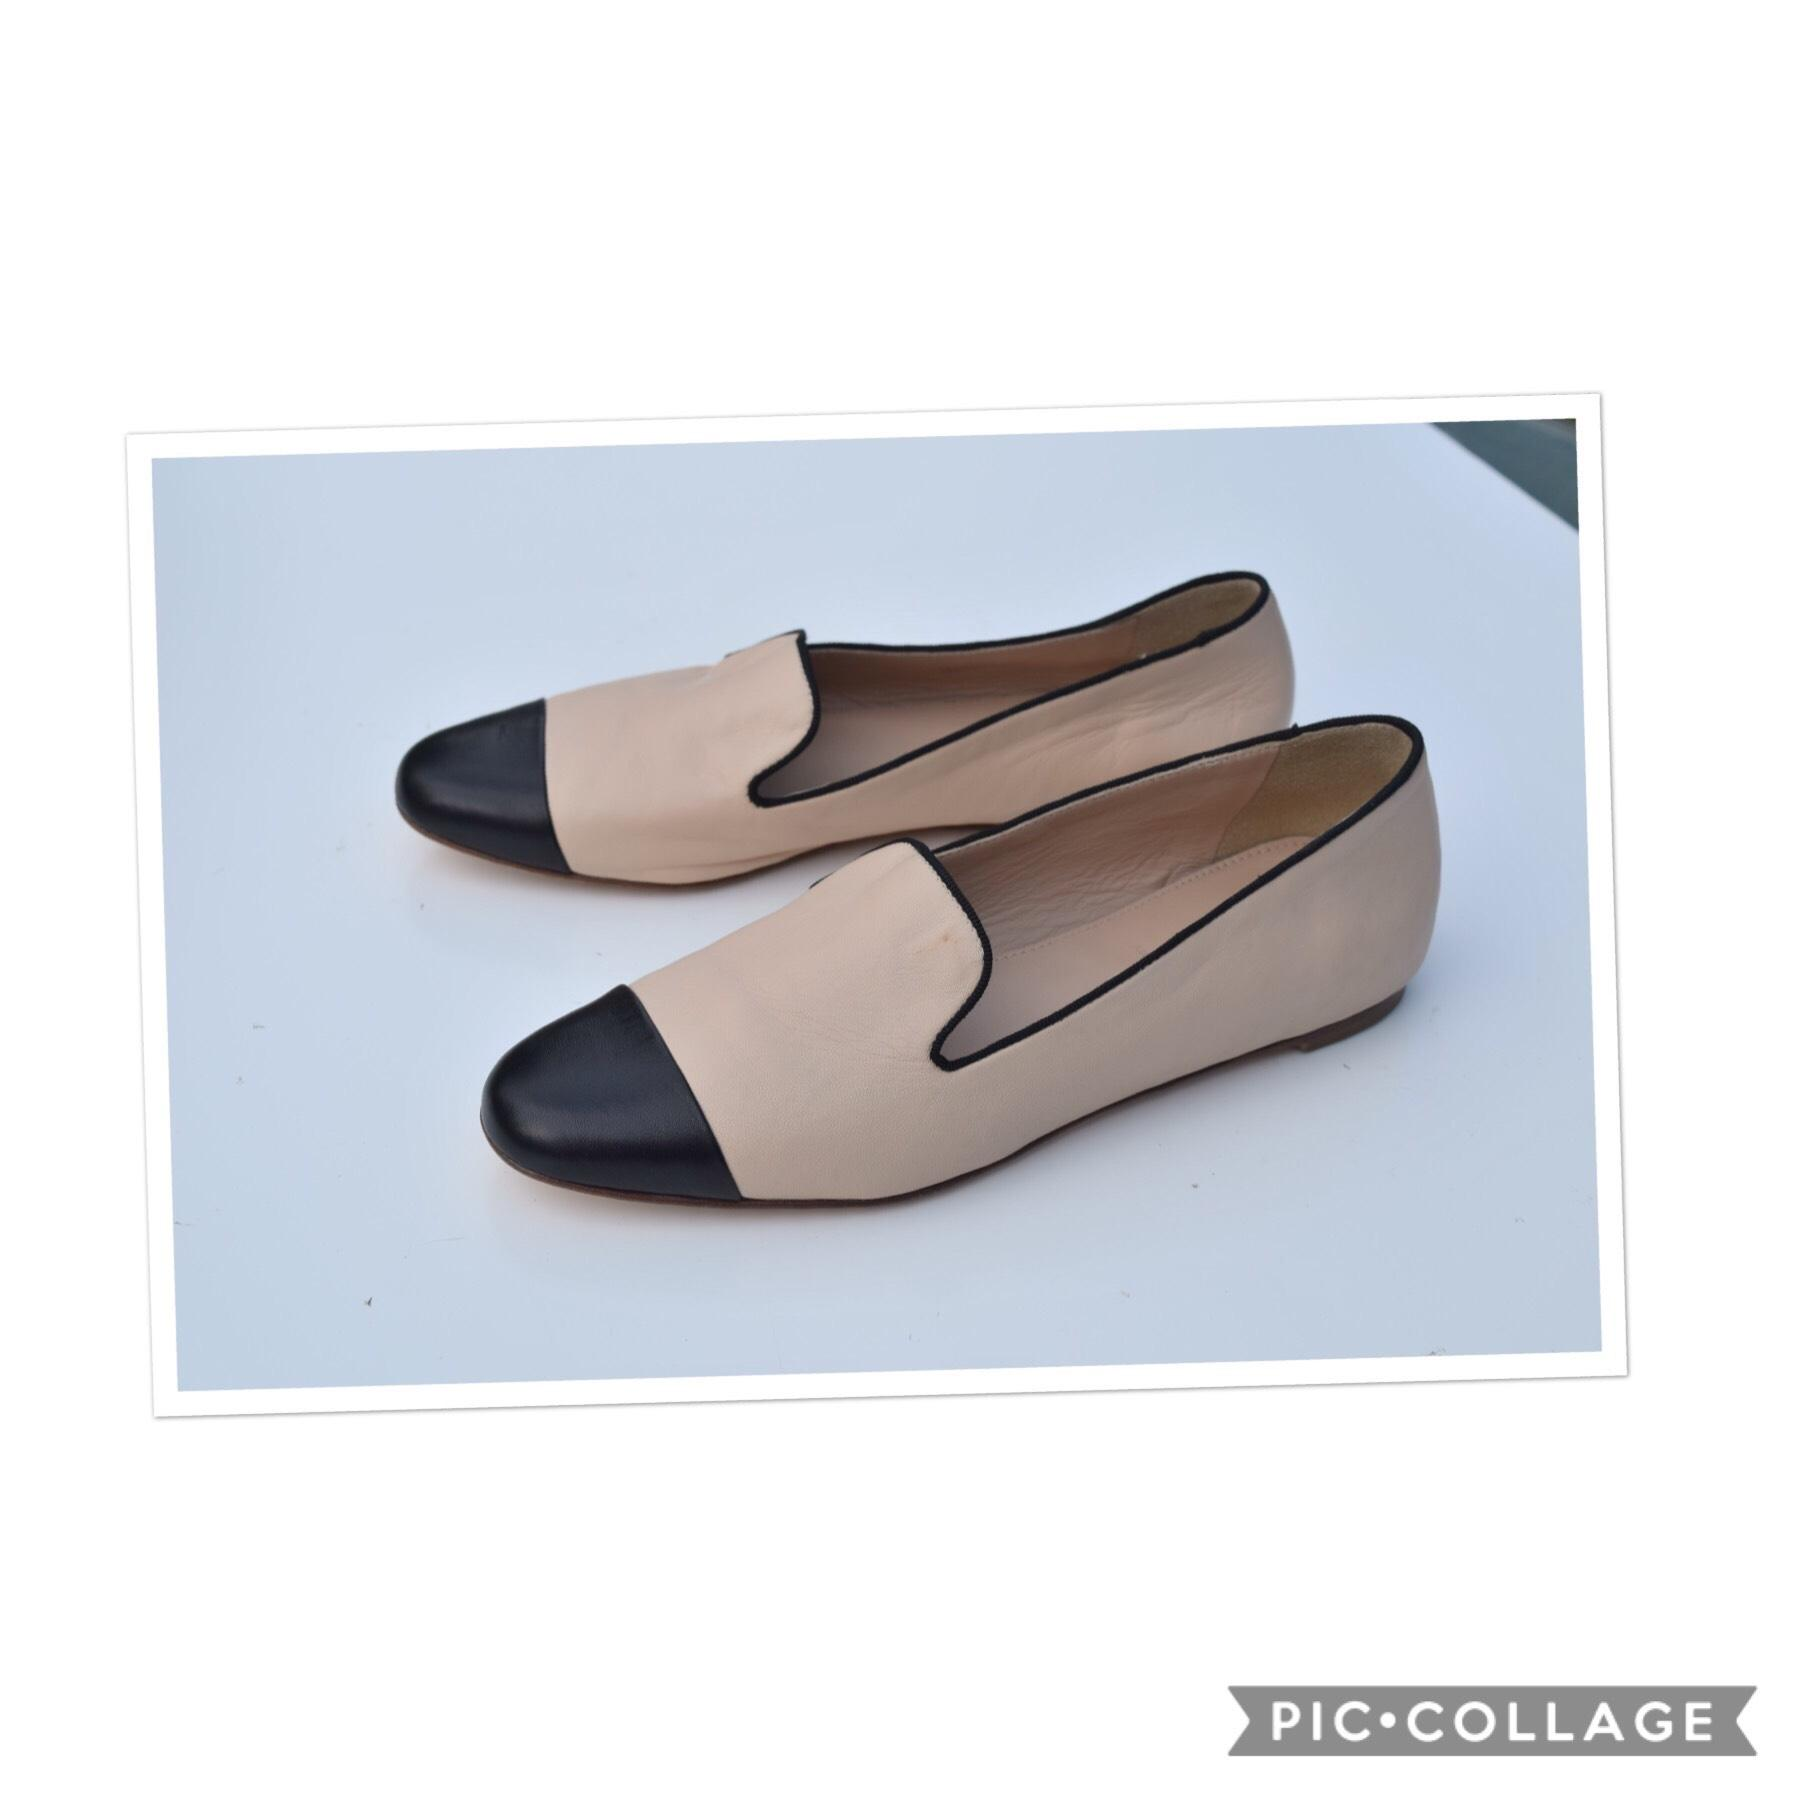 93ab572a03c4 J.Crew Cream Black Darby Cap Toe Loafers Flats Size Size Size US 6.5  Regular (M